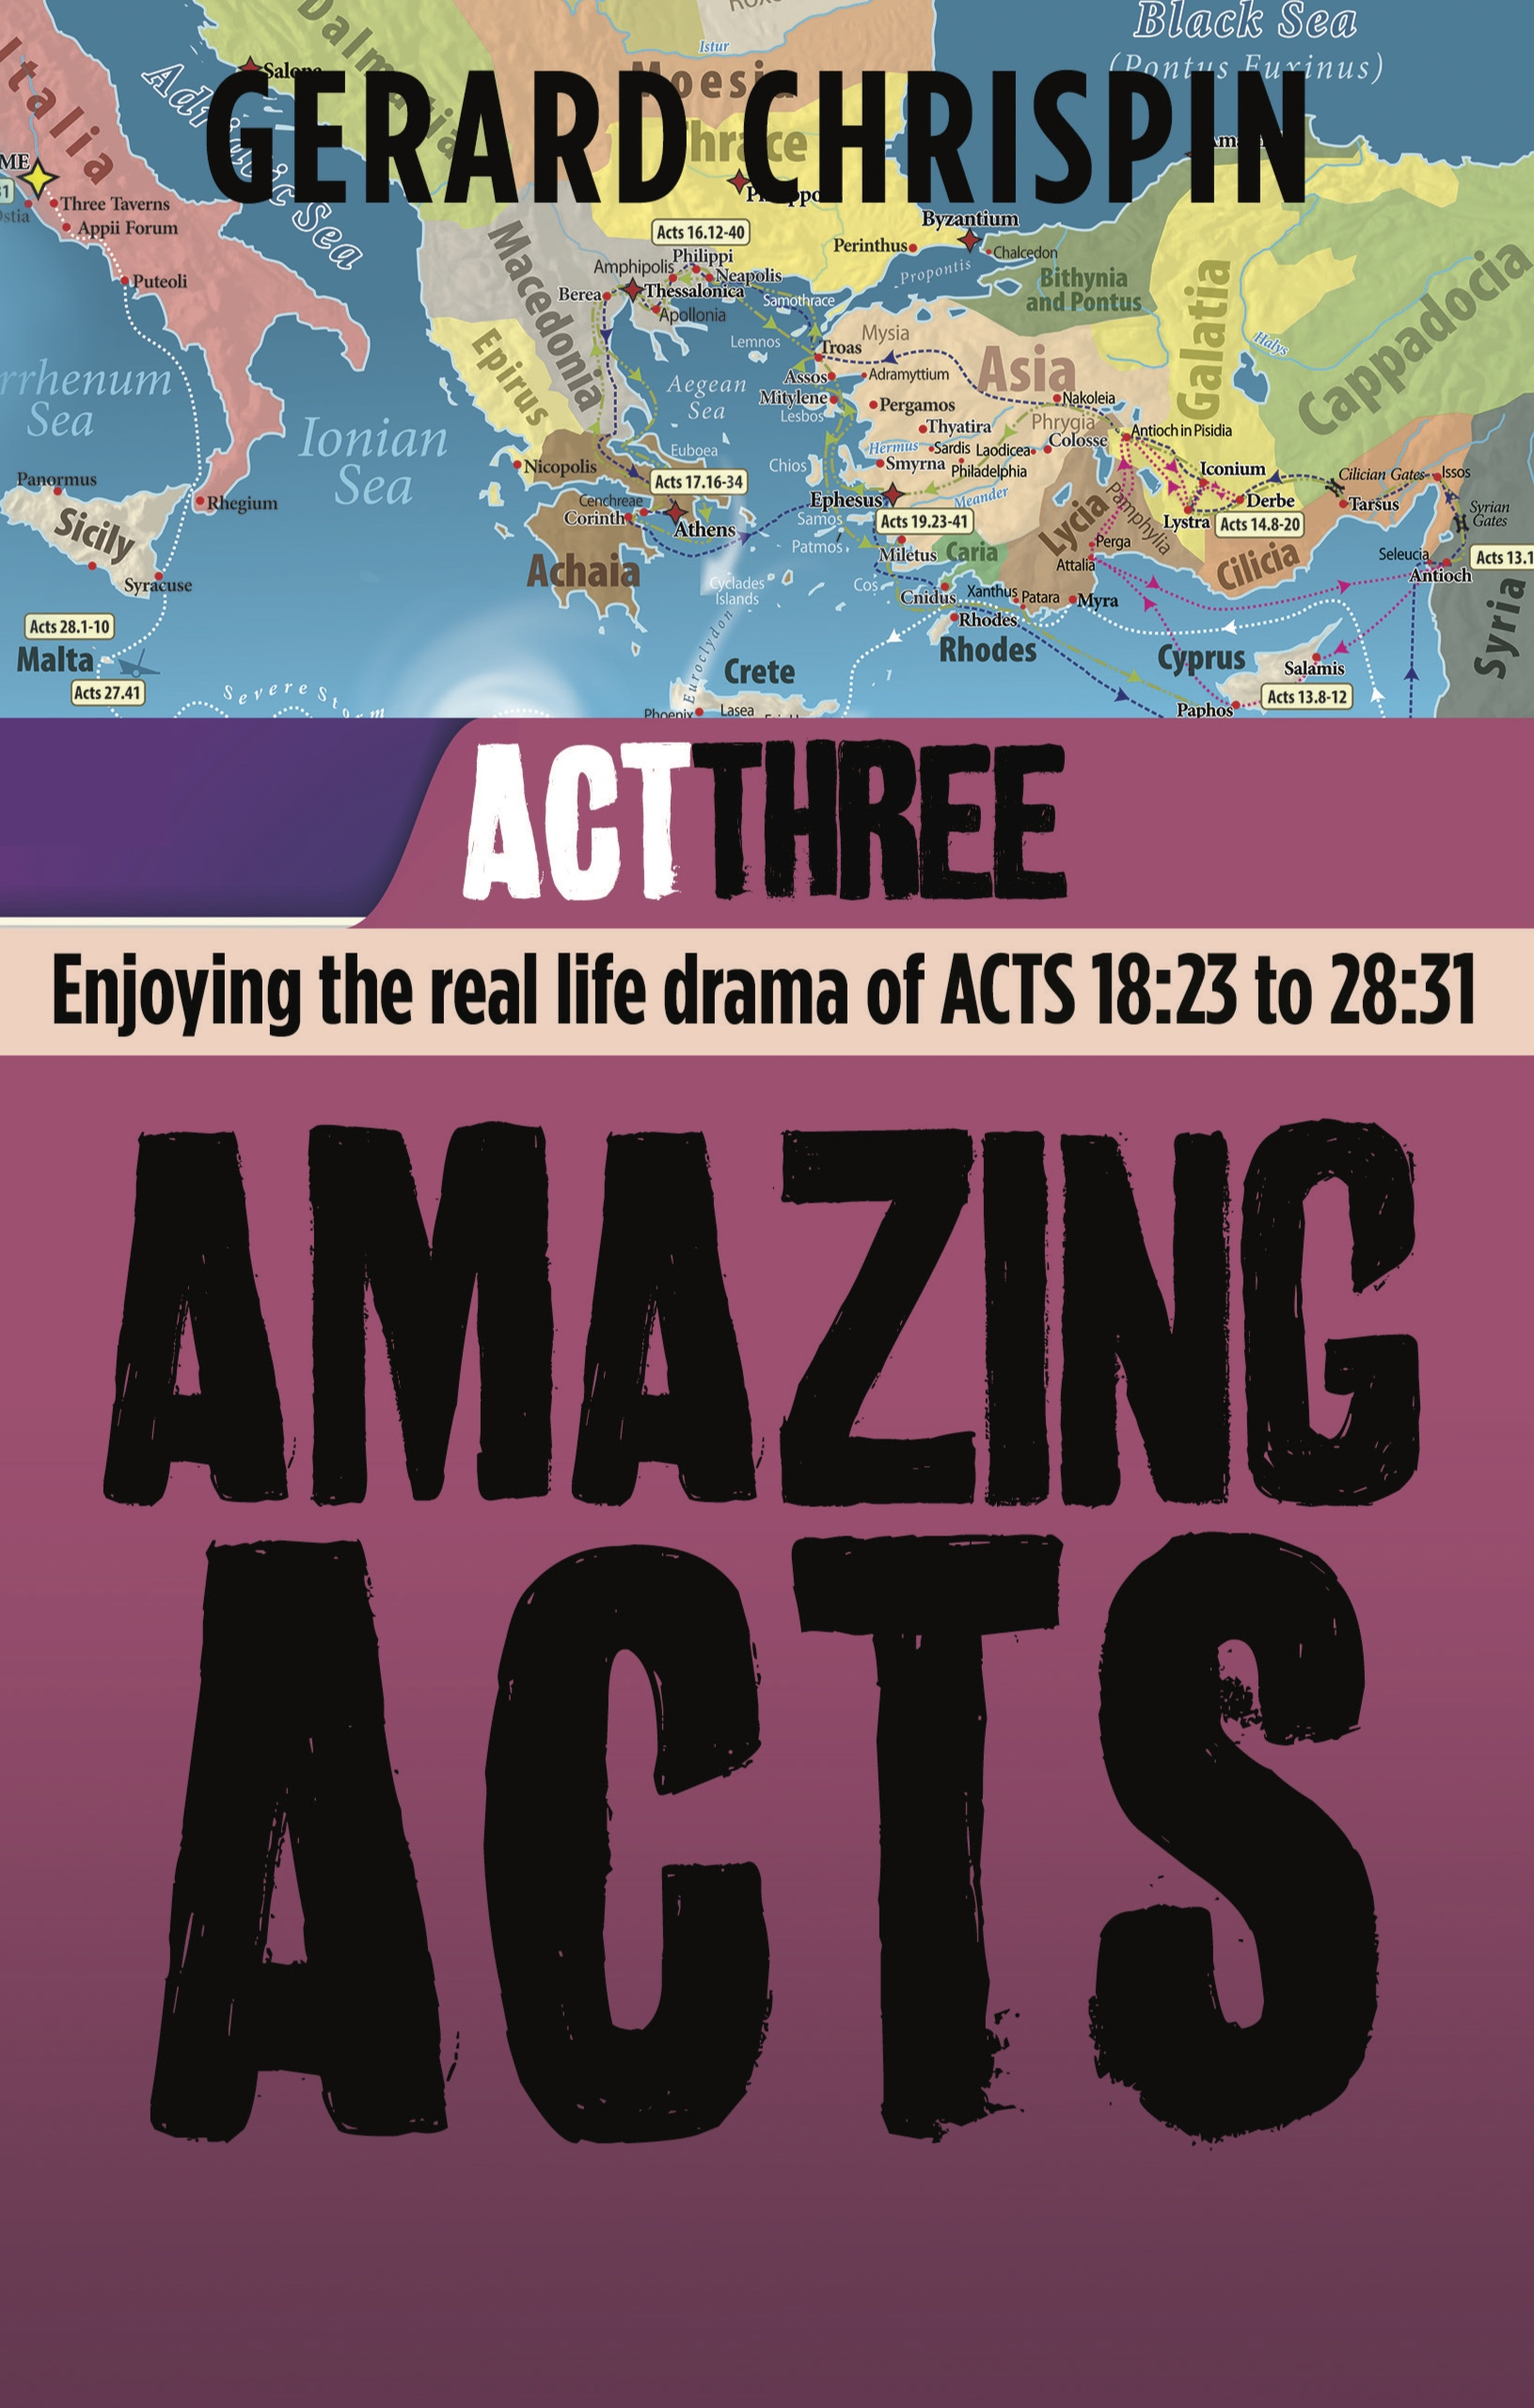 Ep Books The Store For Books: Amazing Acts : Act 3 By Gerard Chrispin